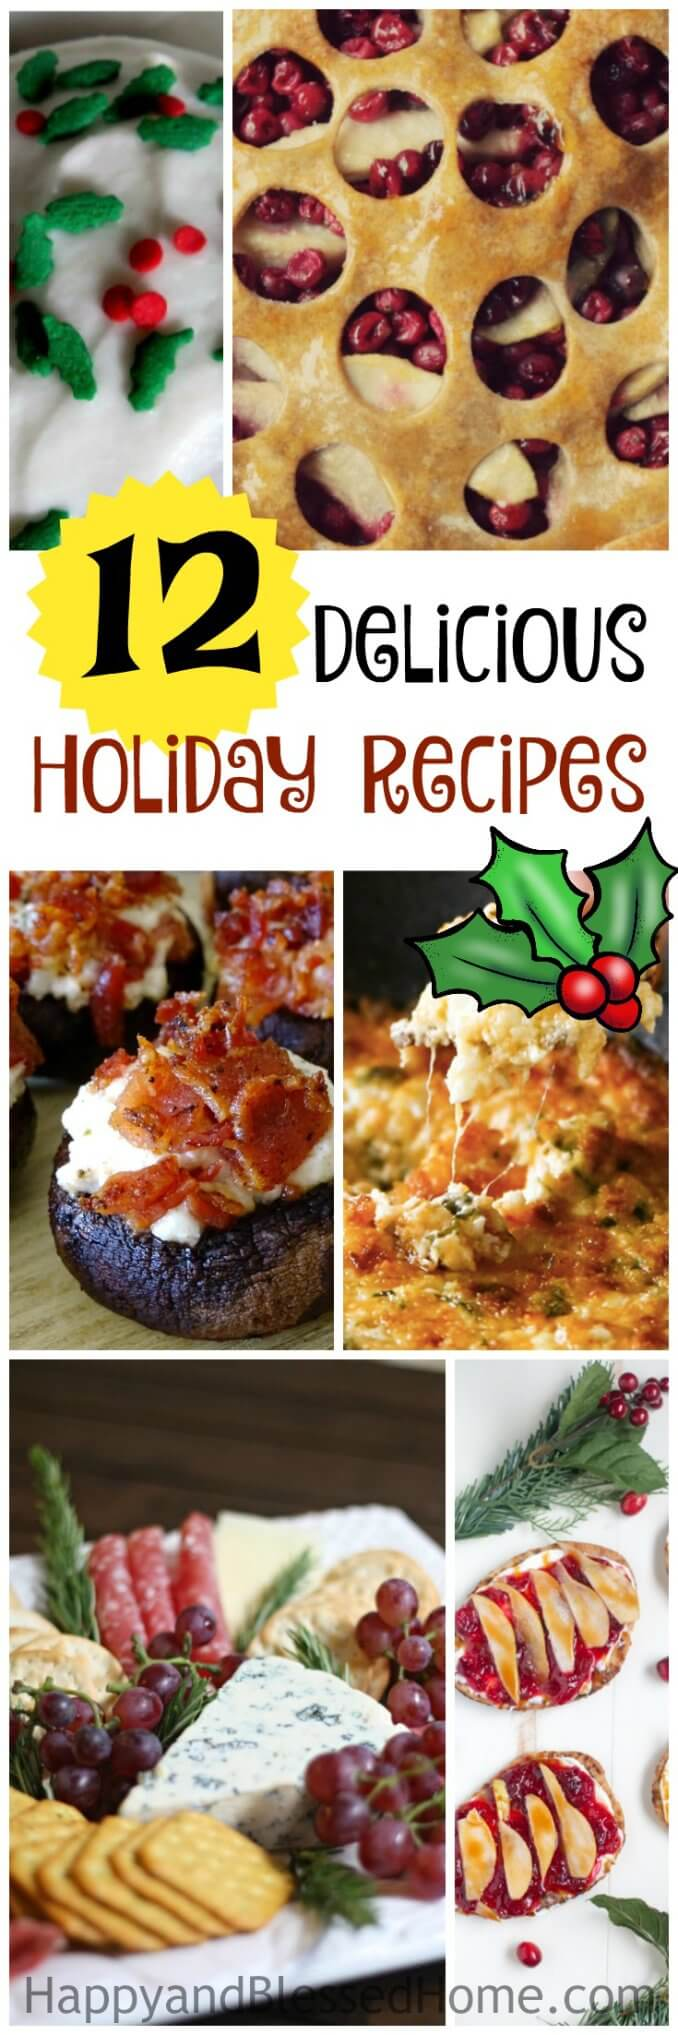 12 Delicious Holiday Recipes